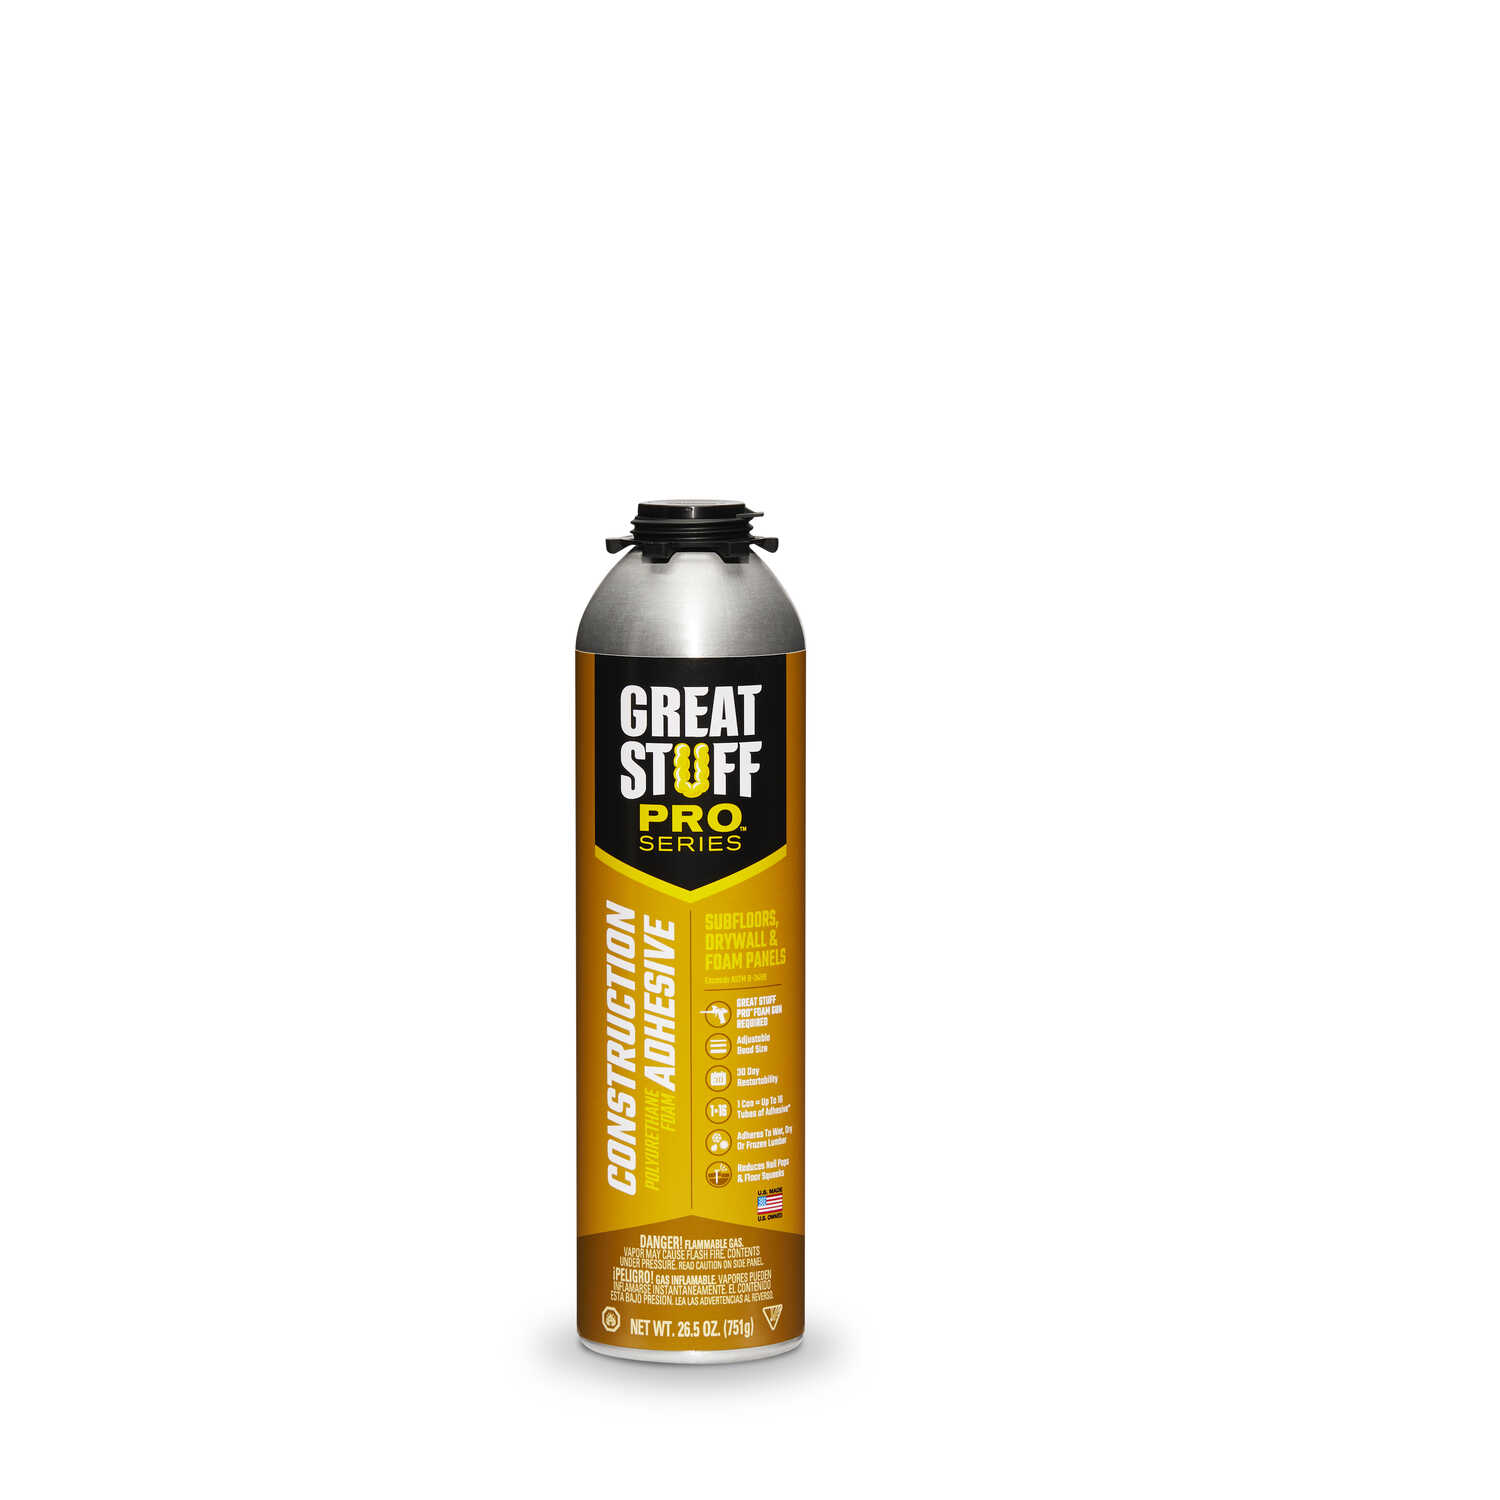 GREAT STUFF  Great Stuff Pro  High Strength  Industrial Grade Adhesive  26.5 oz.